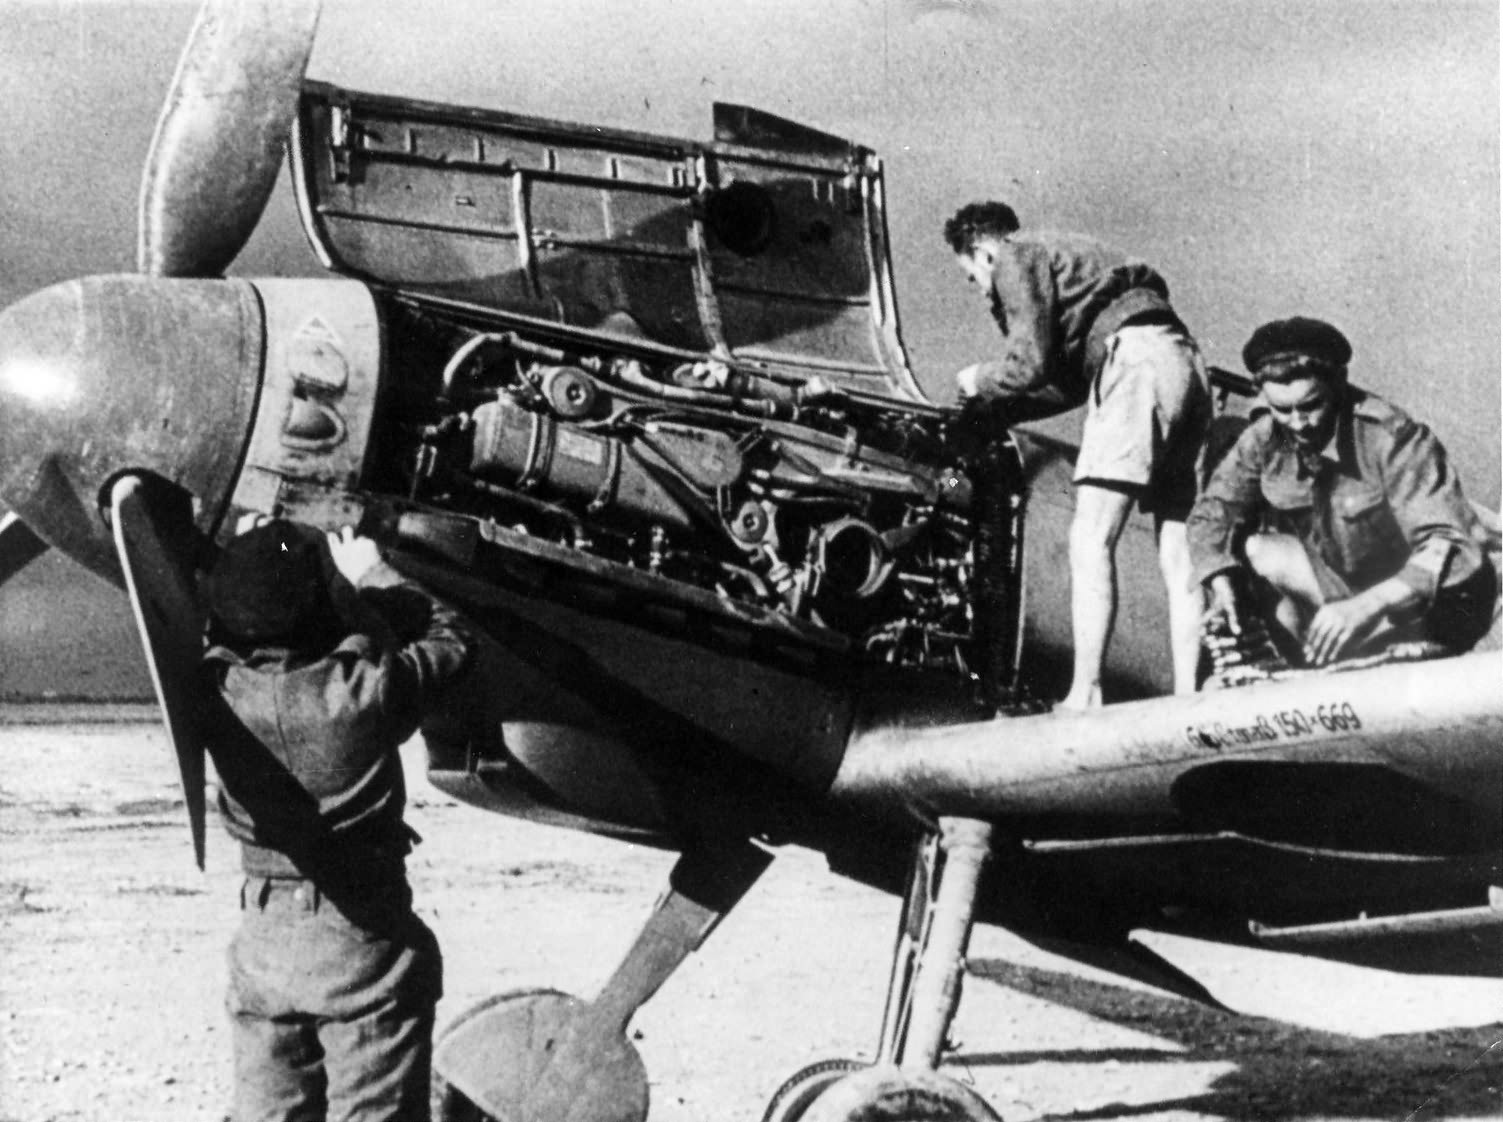 Bf109 F of the JG 27 in Africa 1943